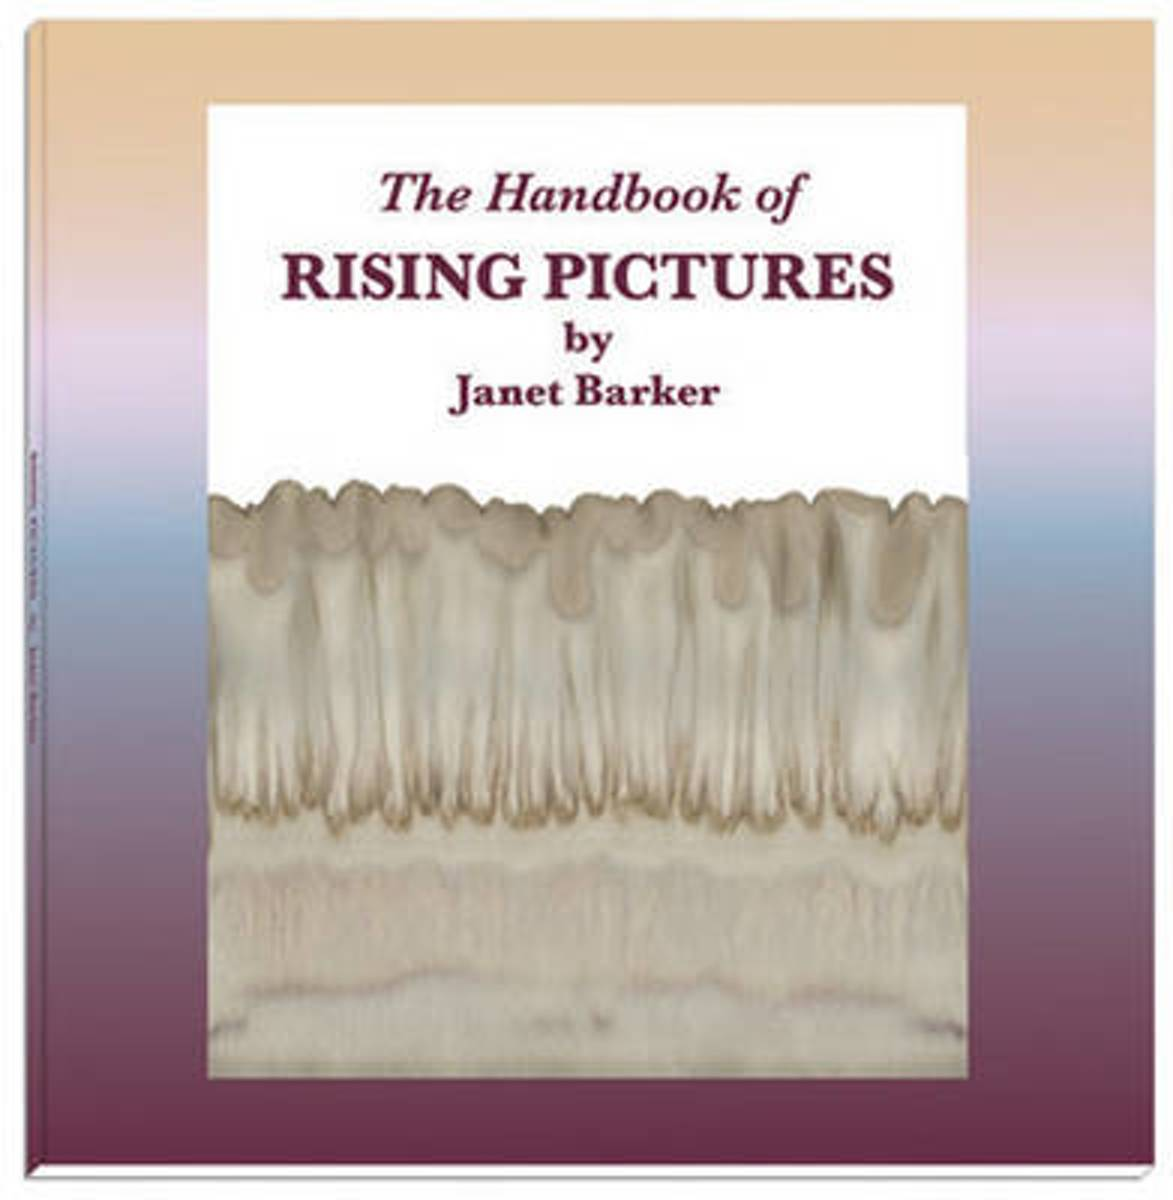 The Handbook of Rising Pictures